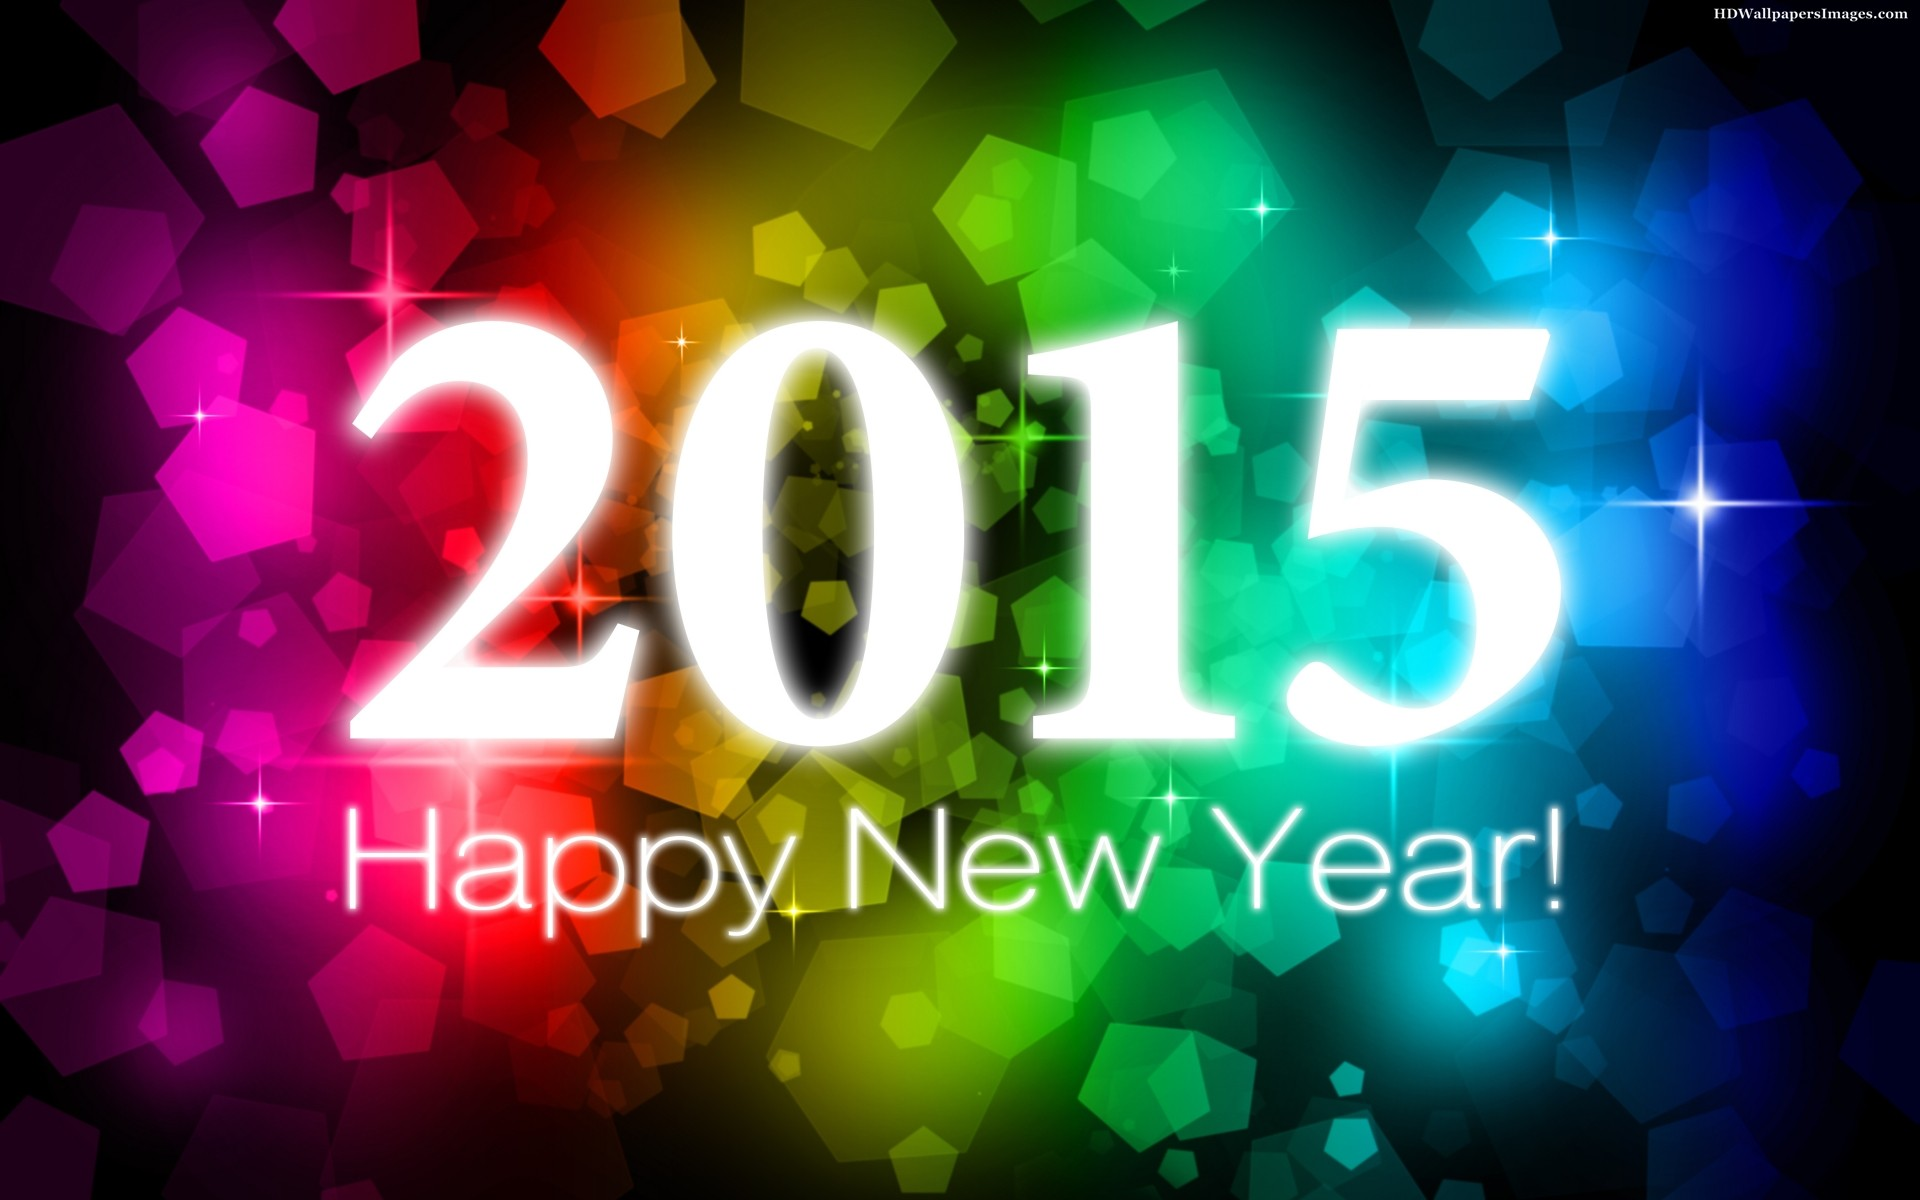 ... 2015 Happy New Year Malayalam/page/2 | Search Results | Calendar 2015